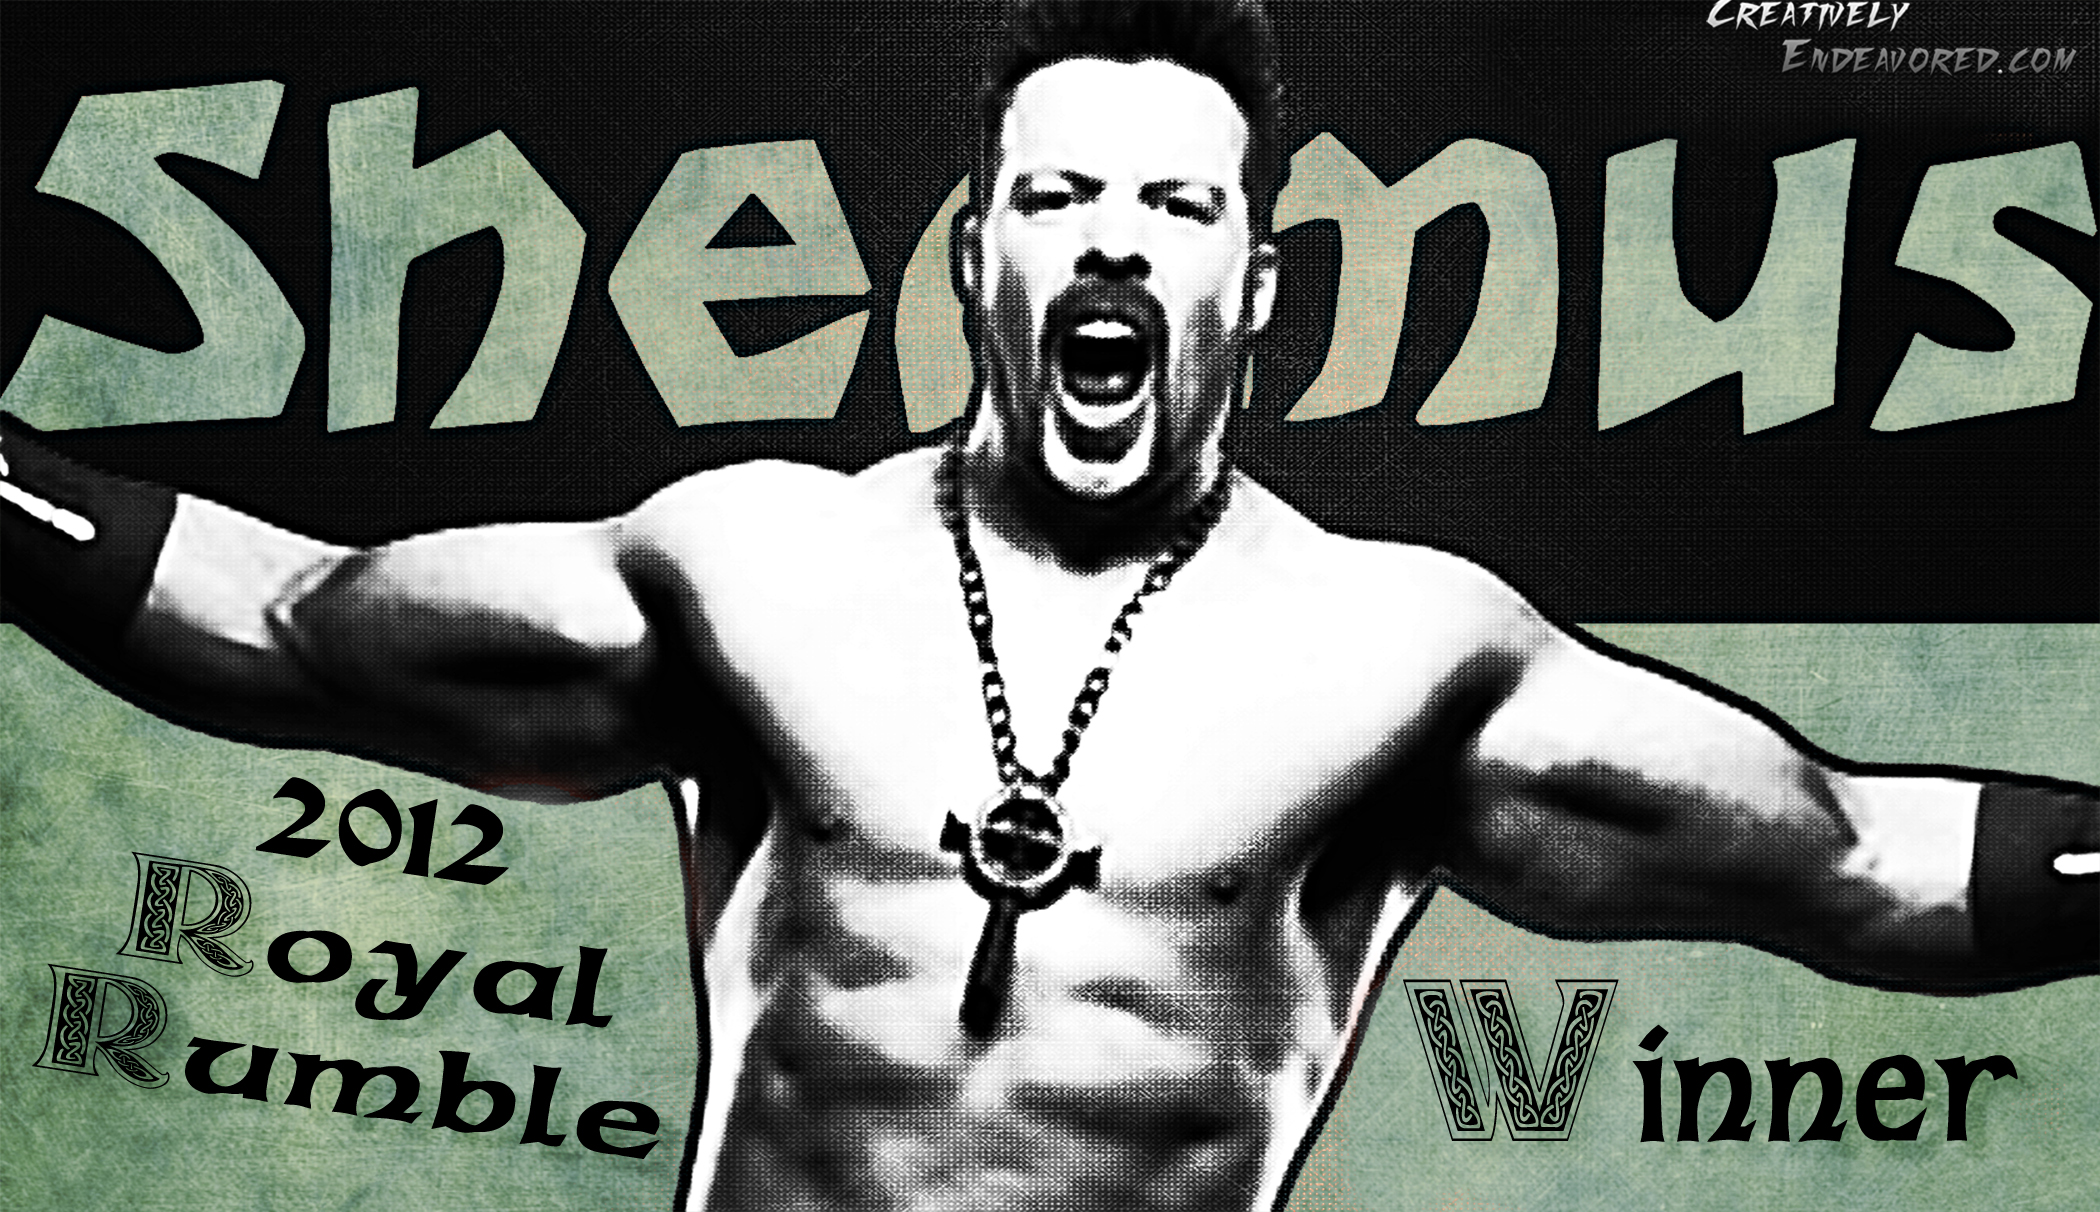 http://creativelyendeavored.files.wordpress.com/2012/01/sheamus-2012-rr-winner.jpg